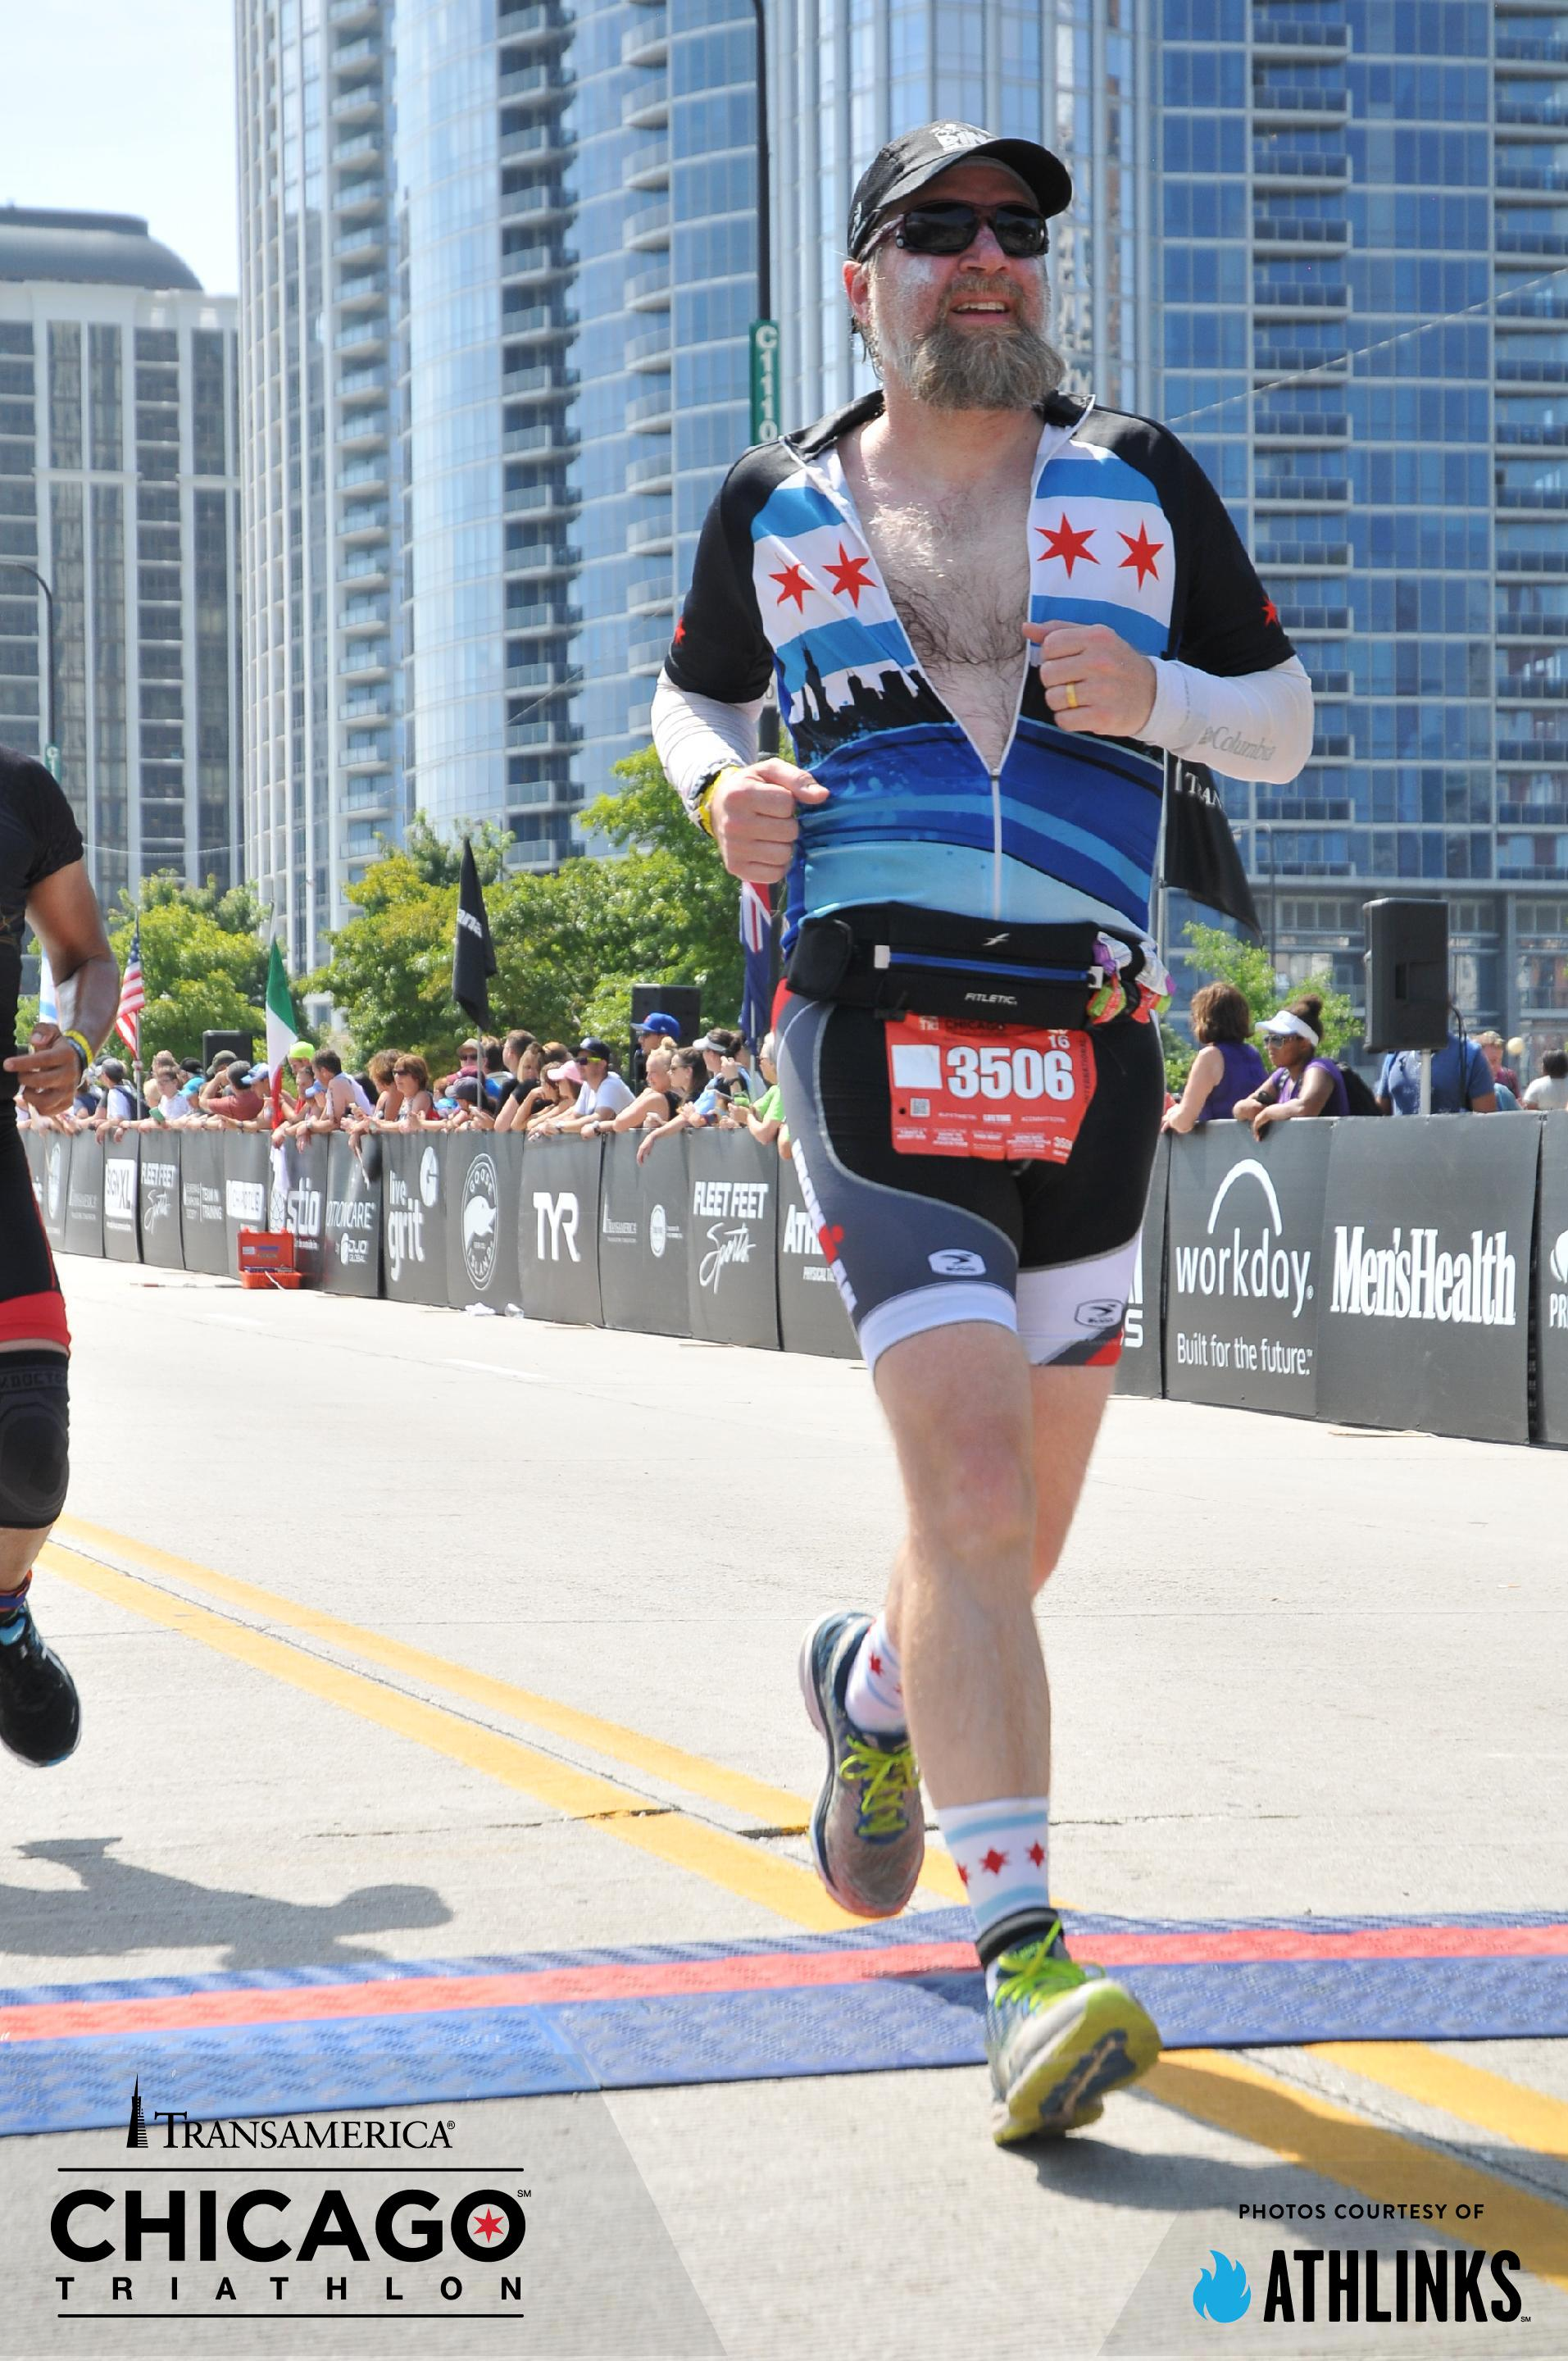 Fuzzy finishing - Chicago Triathlon 2016